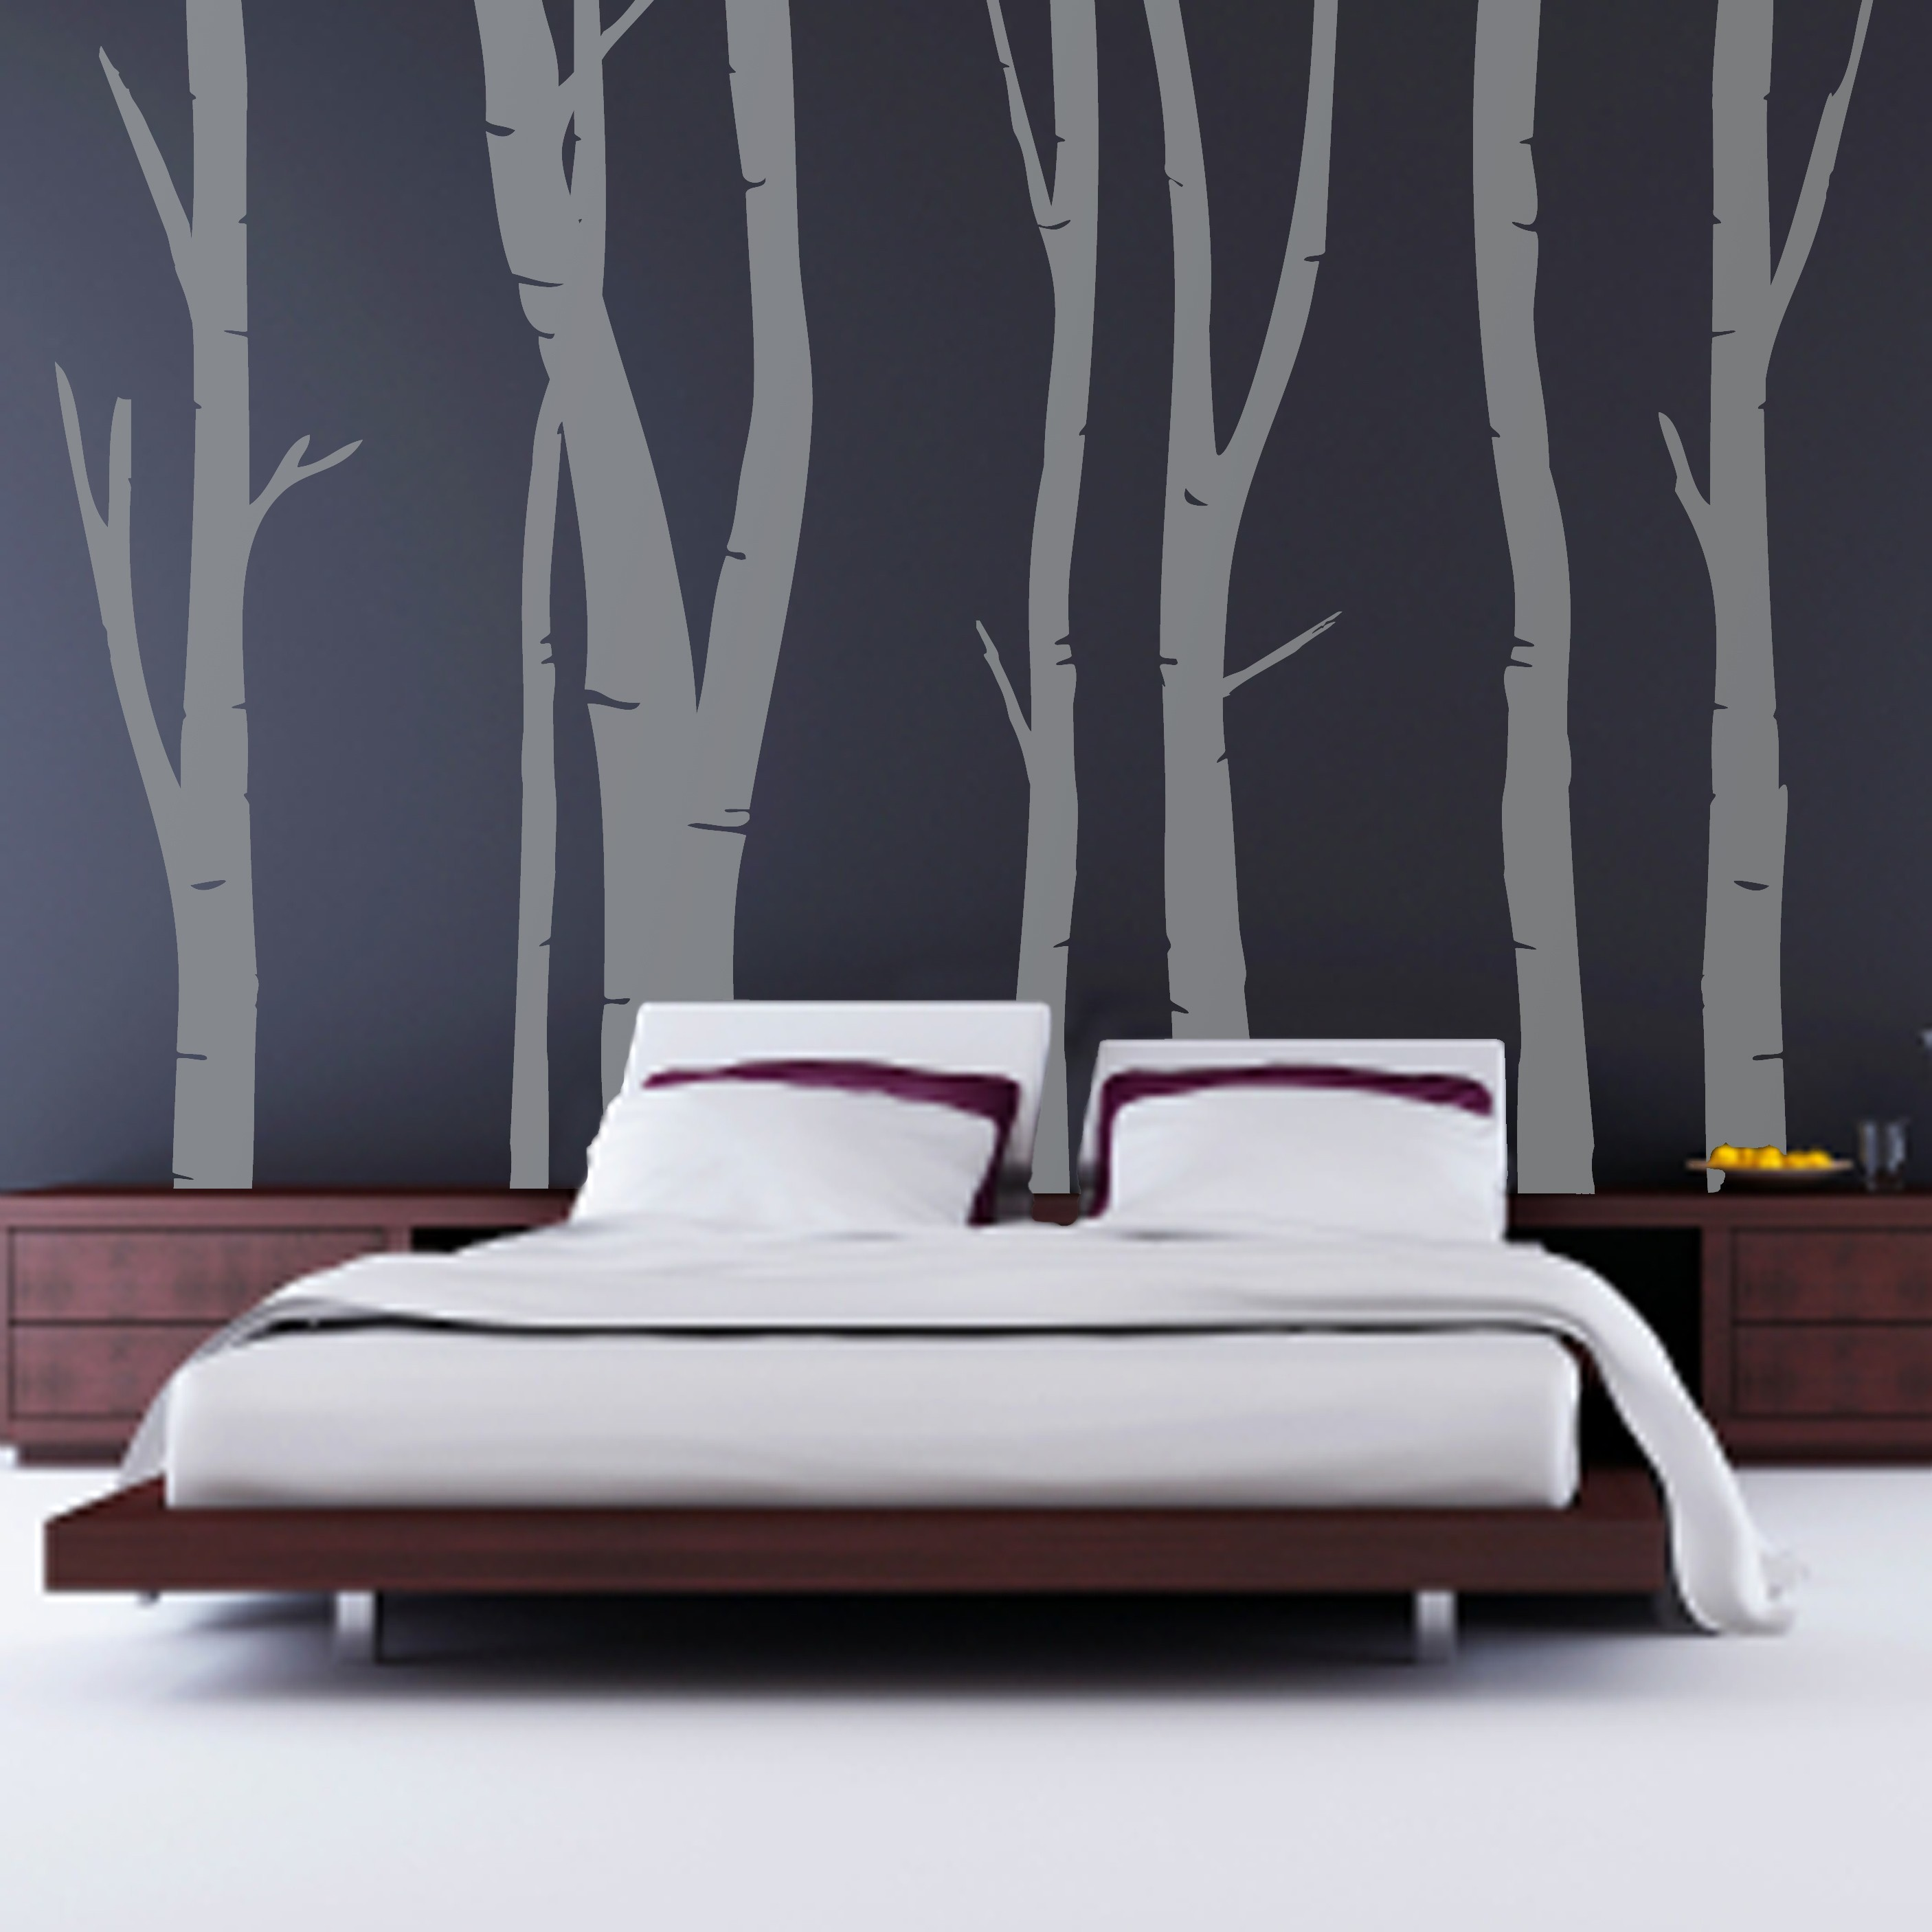 Catchy Deer Home Decor In Wall Decals For Bedroom Unique 1 Kirkland Wall Decor Home Design